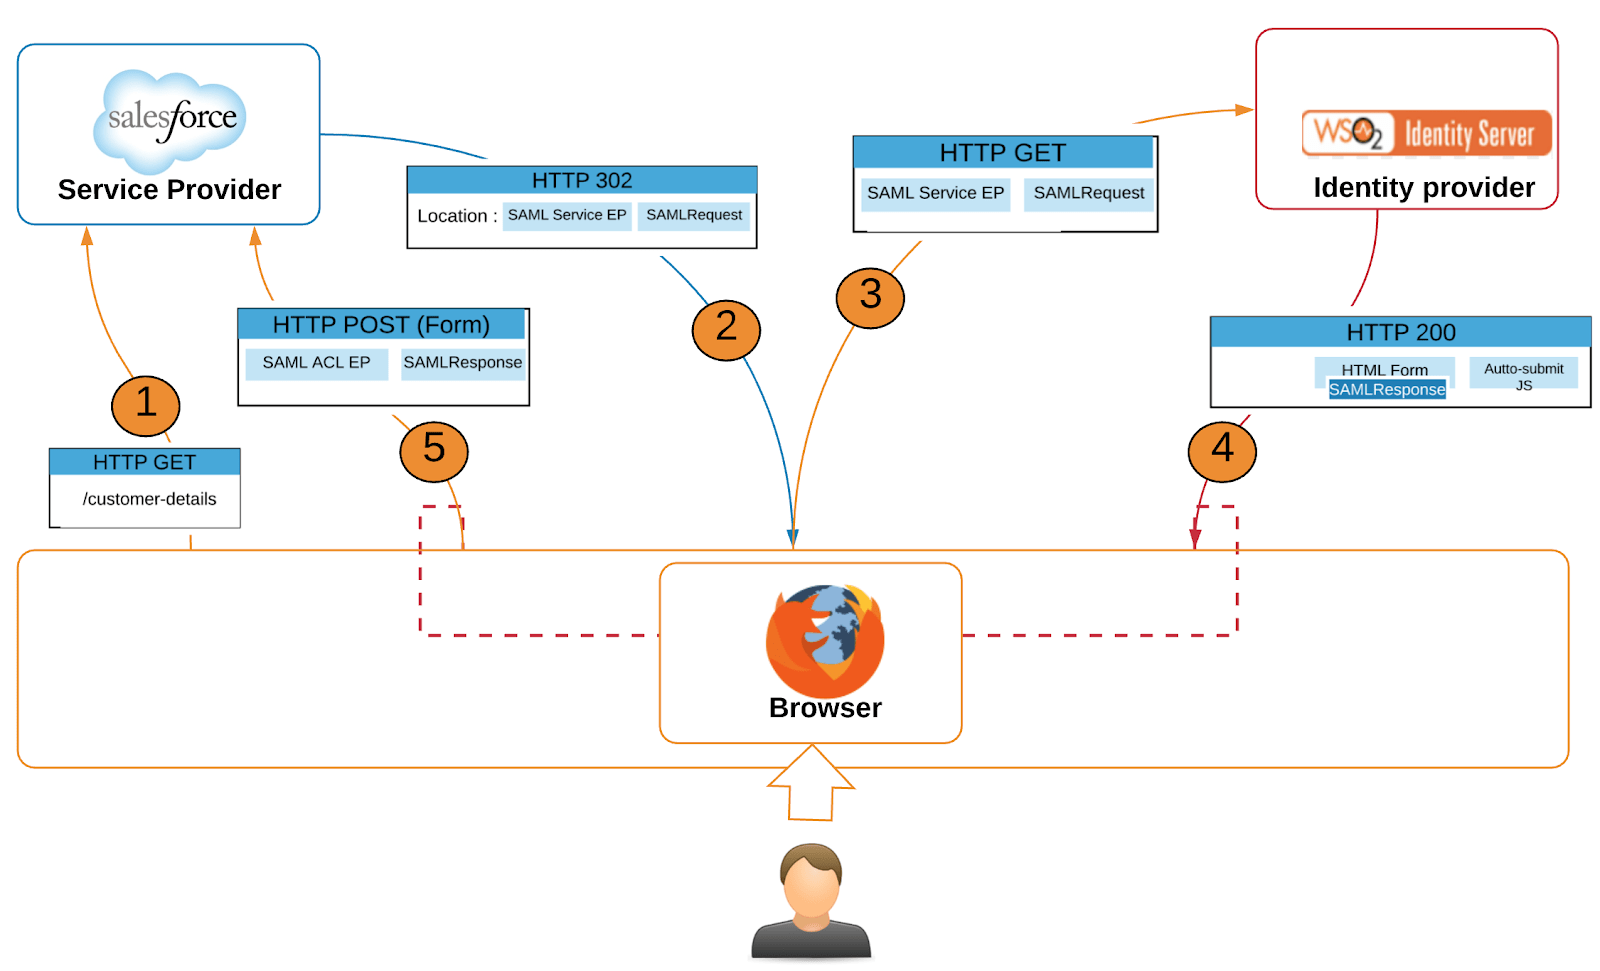 hight resolution of the above diagram depicts sp initiated redirect post approach with exact message structures however i use following sequence diagram to further explain